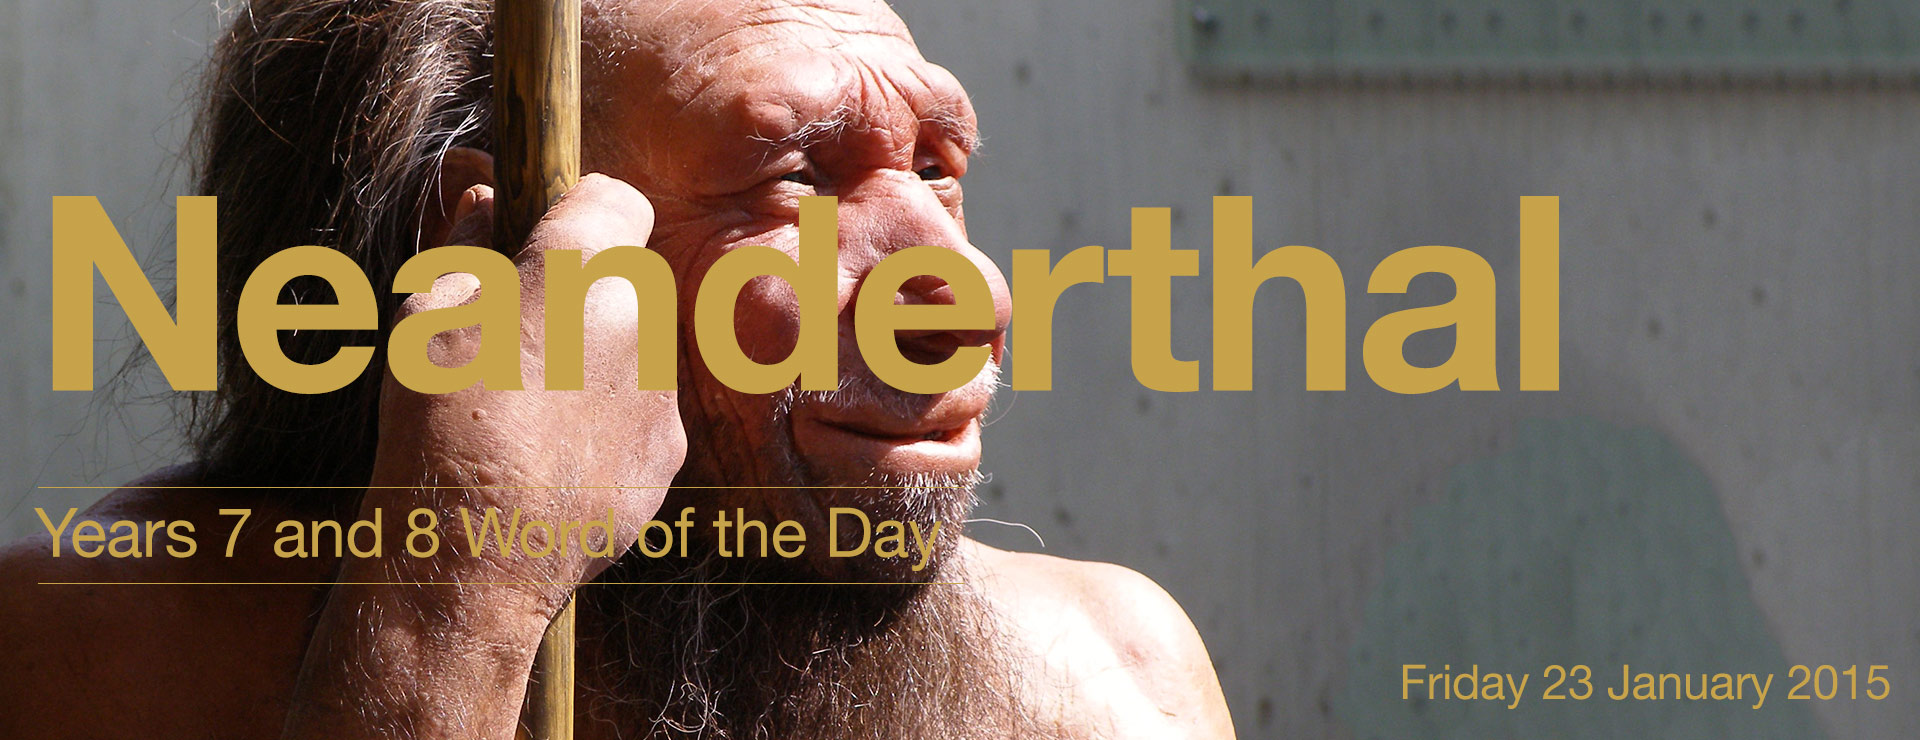 Word-of-the-Day-89.jpg